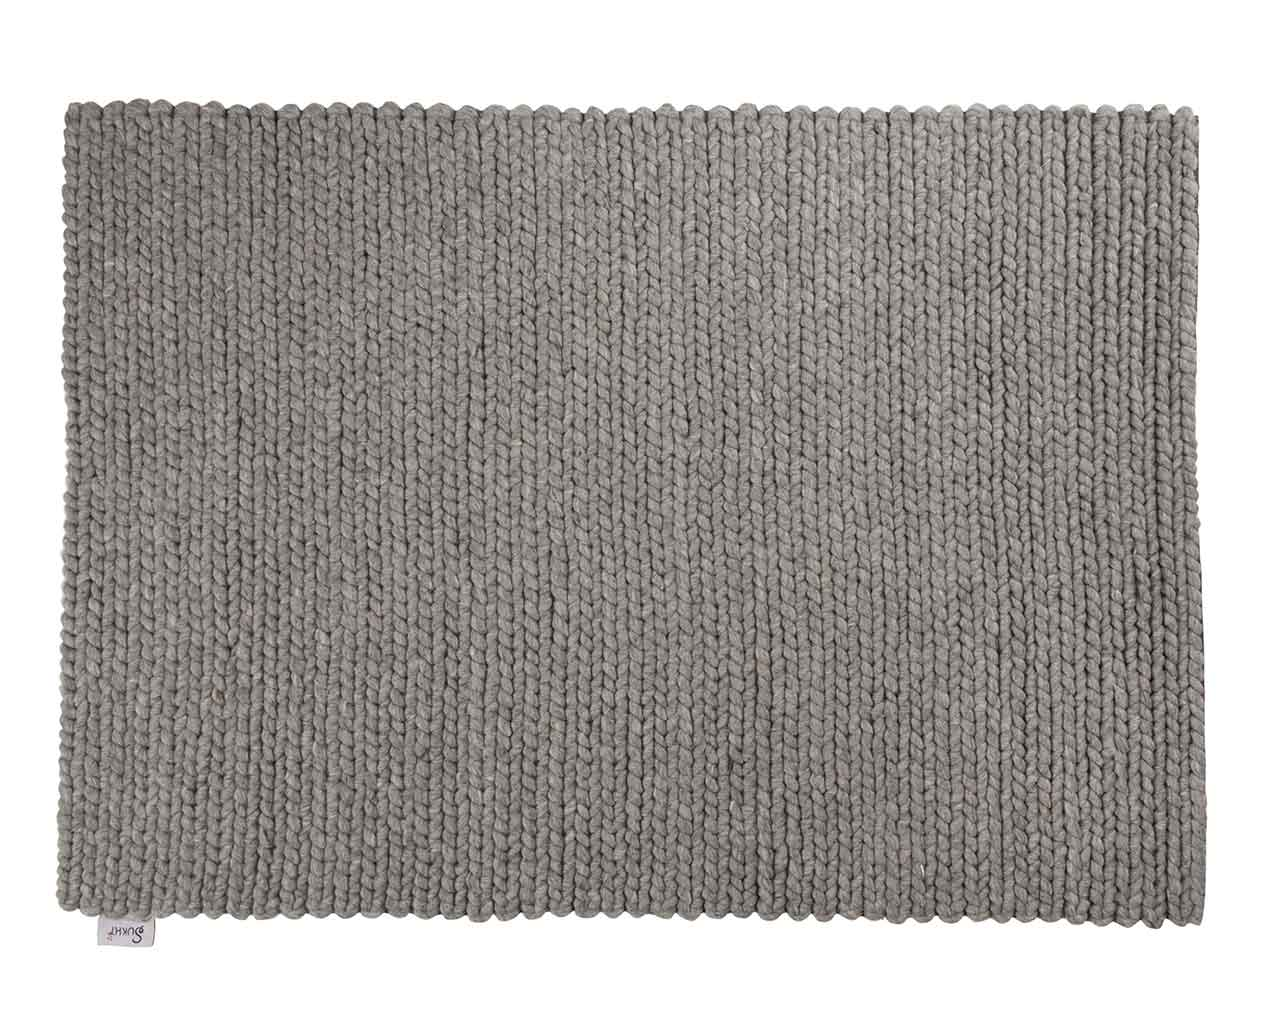 large size carpet grey wool 1